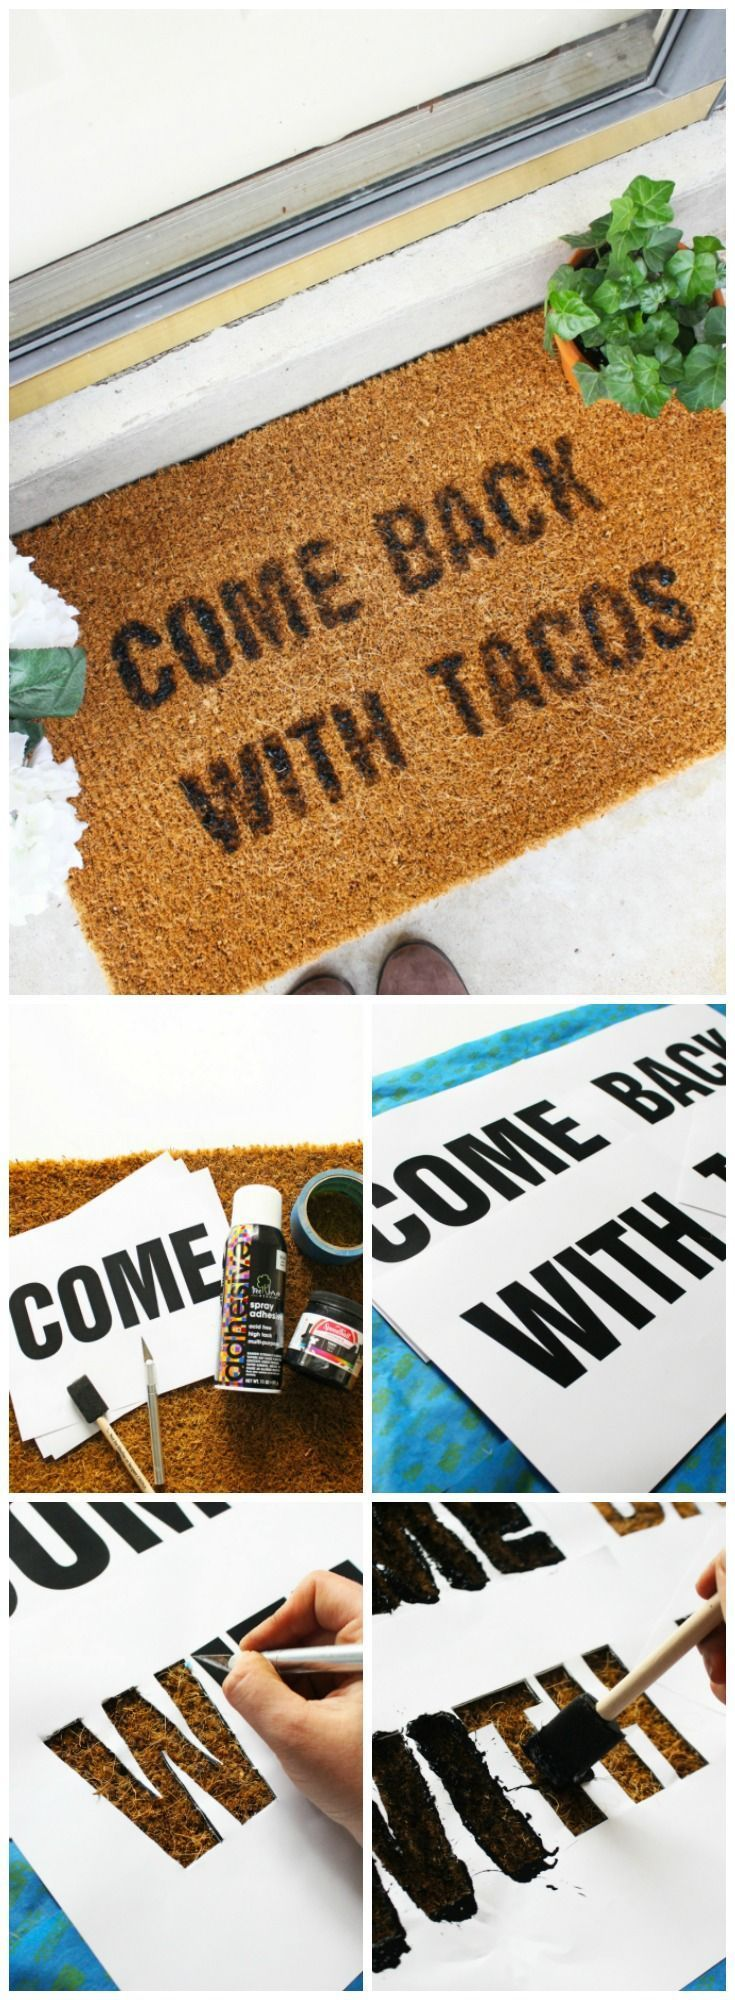 Funny doormat quote DIY tutorial. Easy welcome mat DIY ideas to decorate your front porch or patio. More on good ideas and DIY